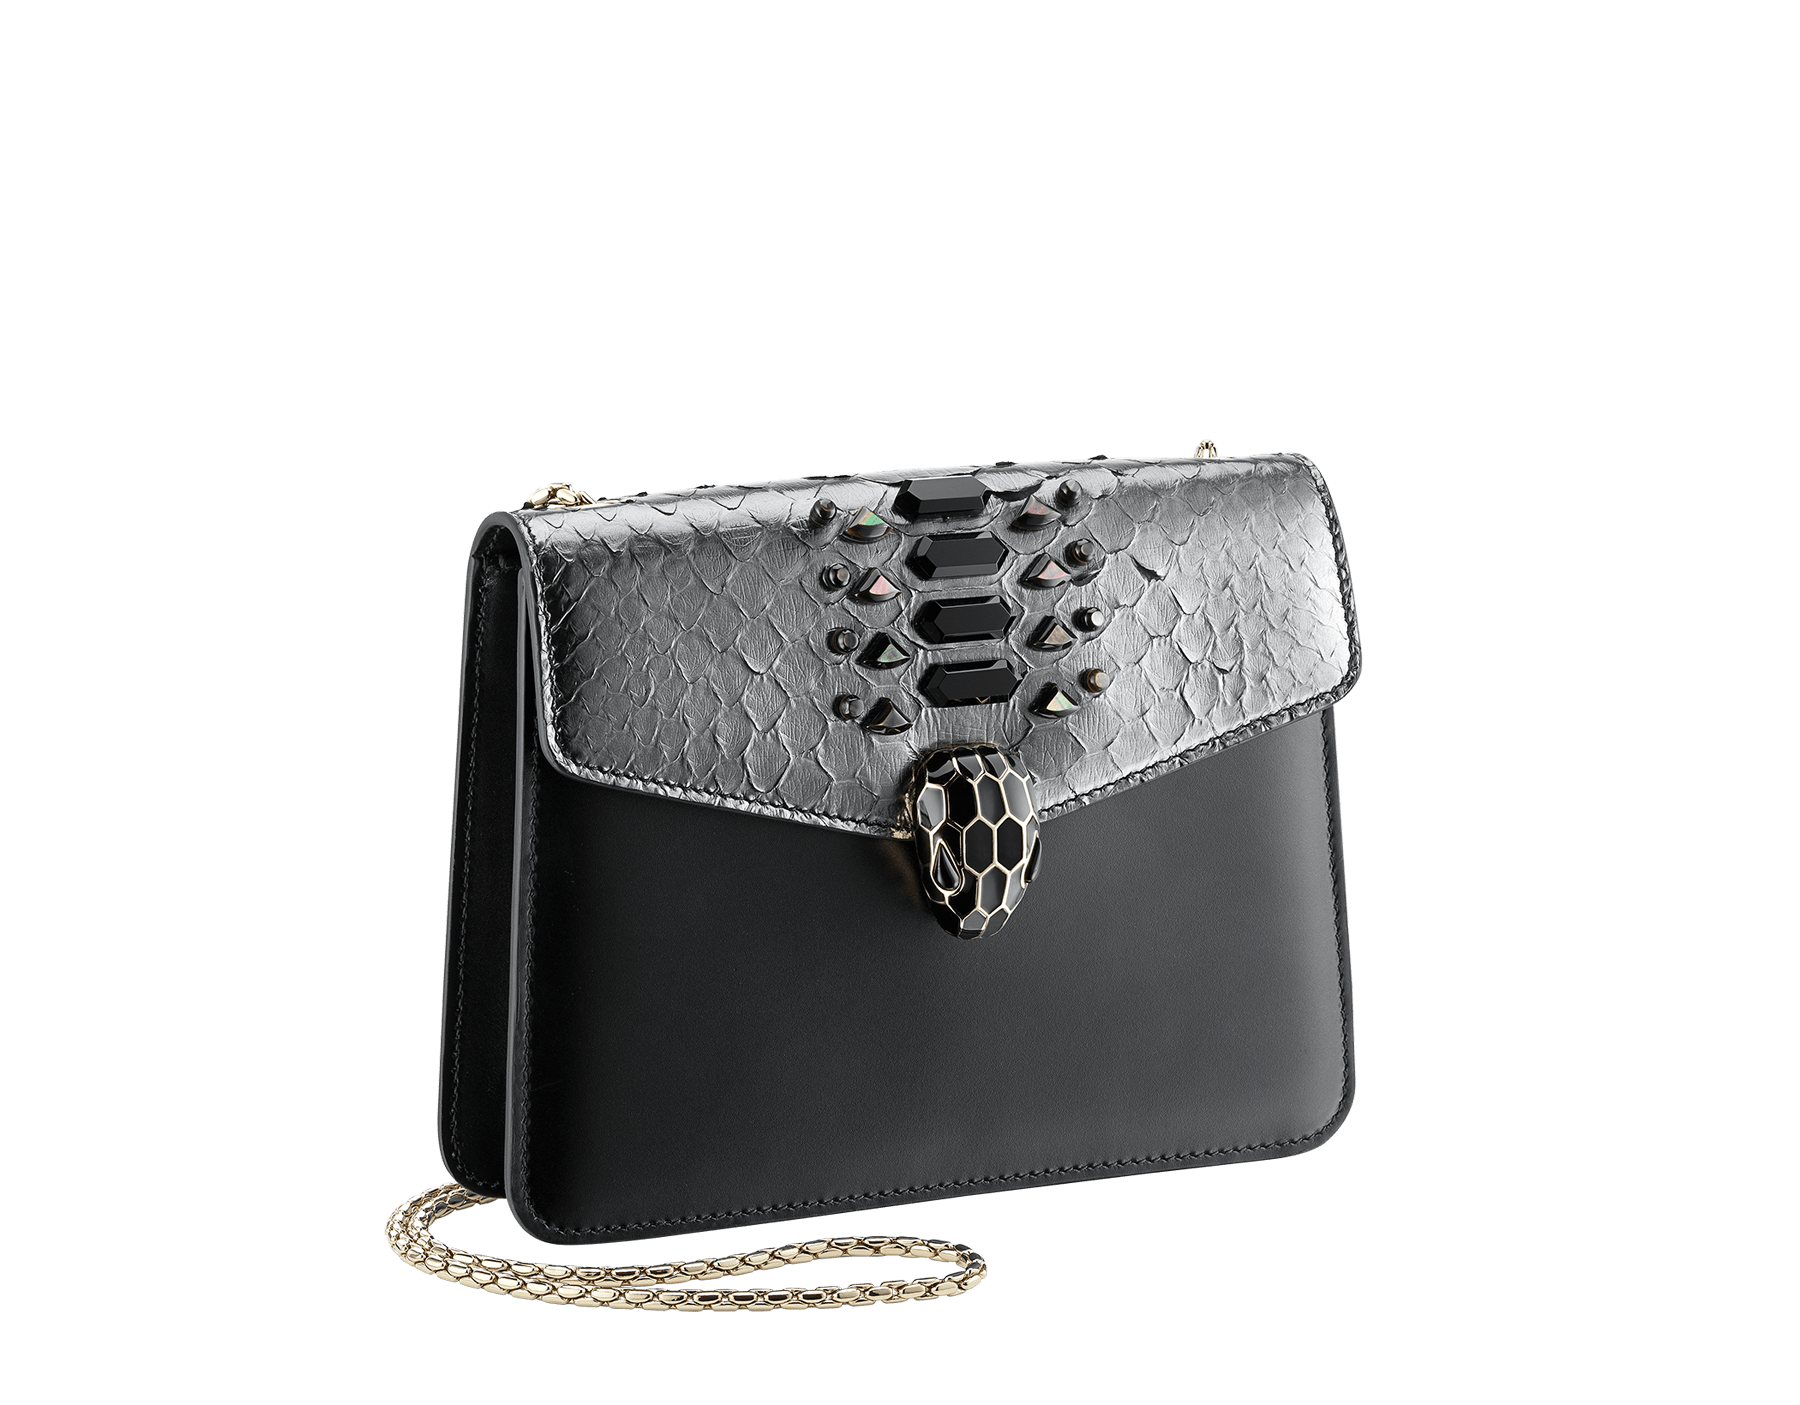 """""""Serpenti Forever"""" crossbody bag in dark silver python skin flap with onyx scales applied and black smooth calf leather body. Iconic snakehead closure in light gold plated brass enriched with matte and shiny black enamel and black onyx eyes. 289420 image 2"""